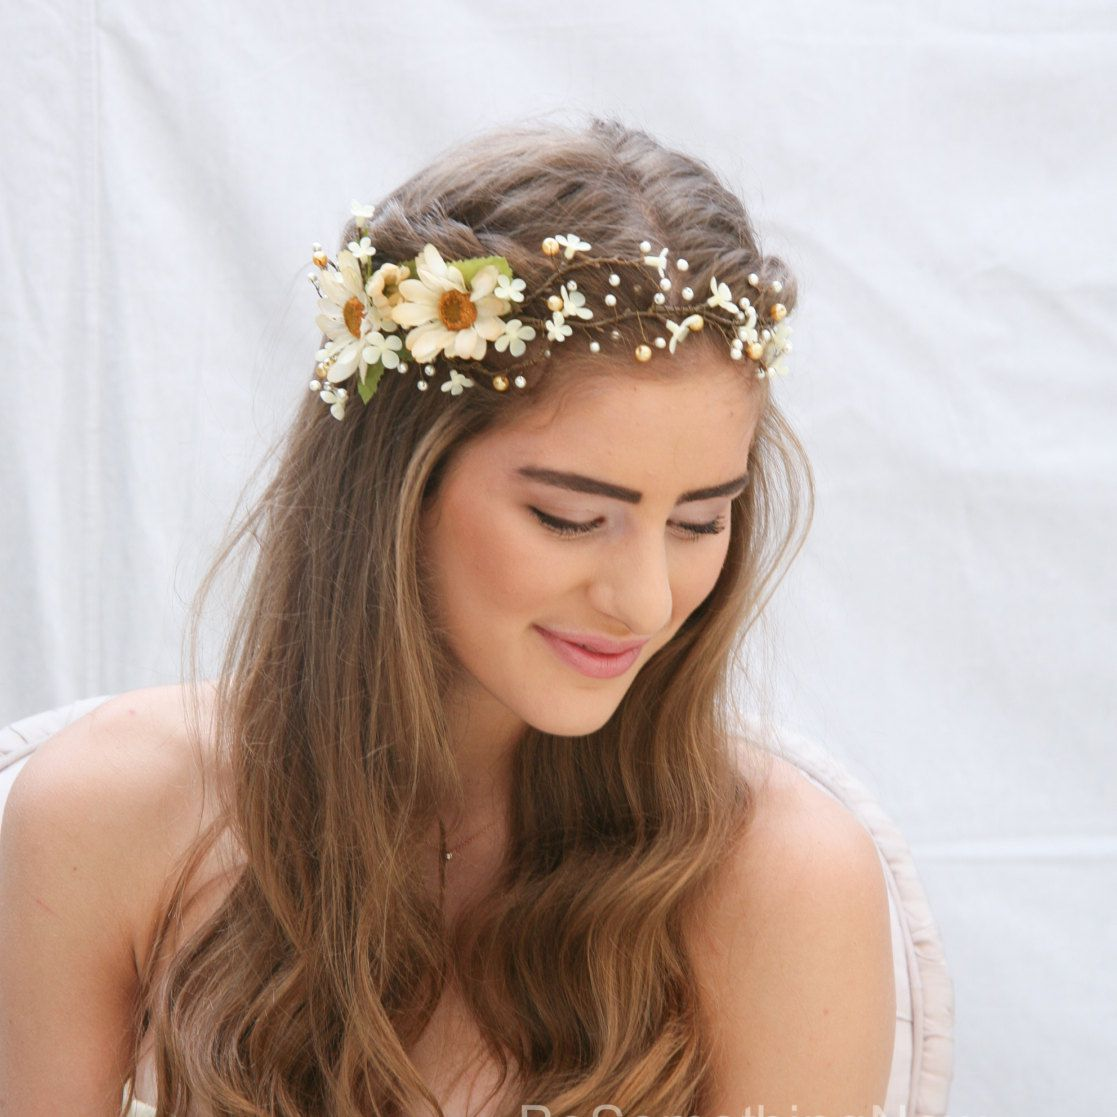 ef55907a4deb8 29 Chic Flower Crowns For You And Your Bridesmaids You Can Buy Now